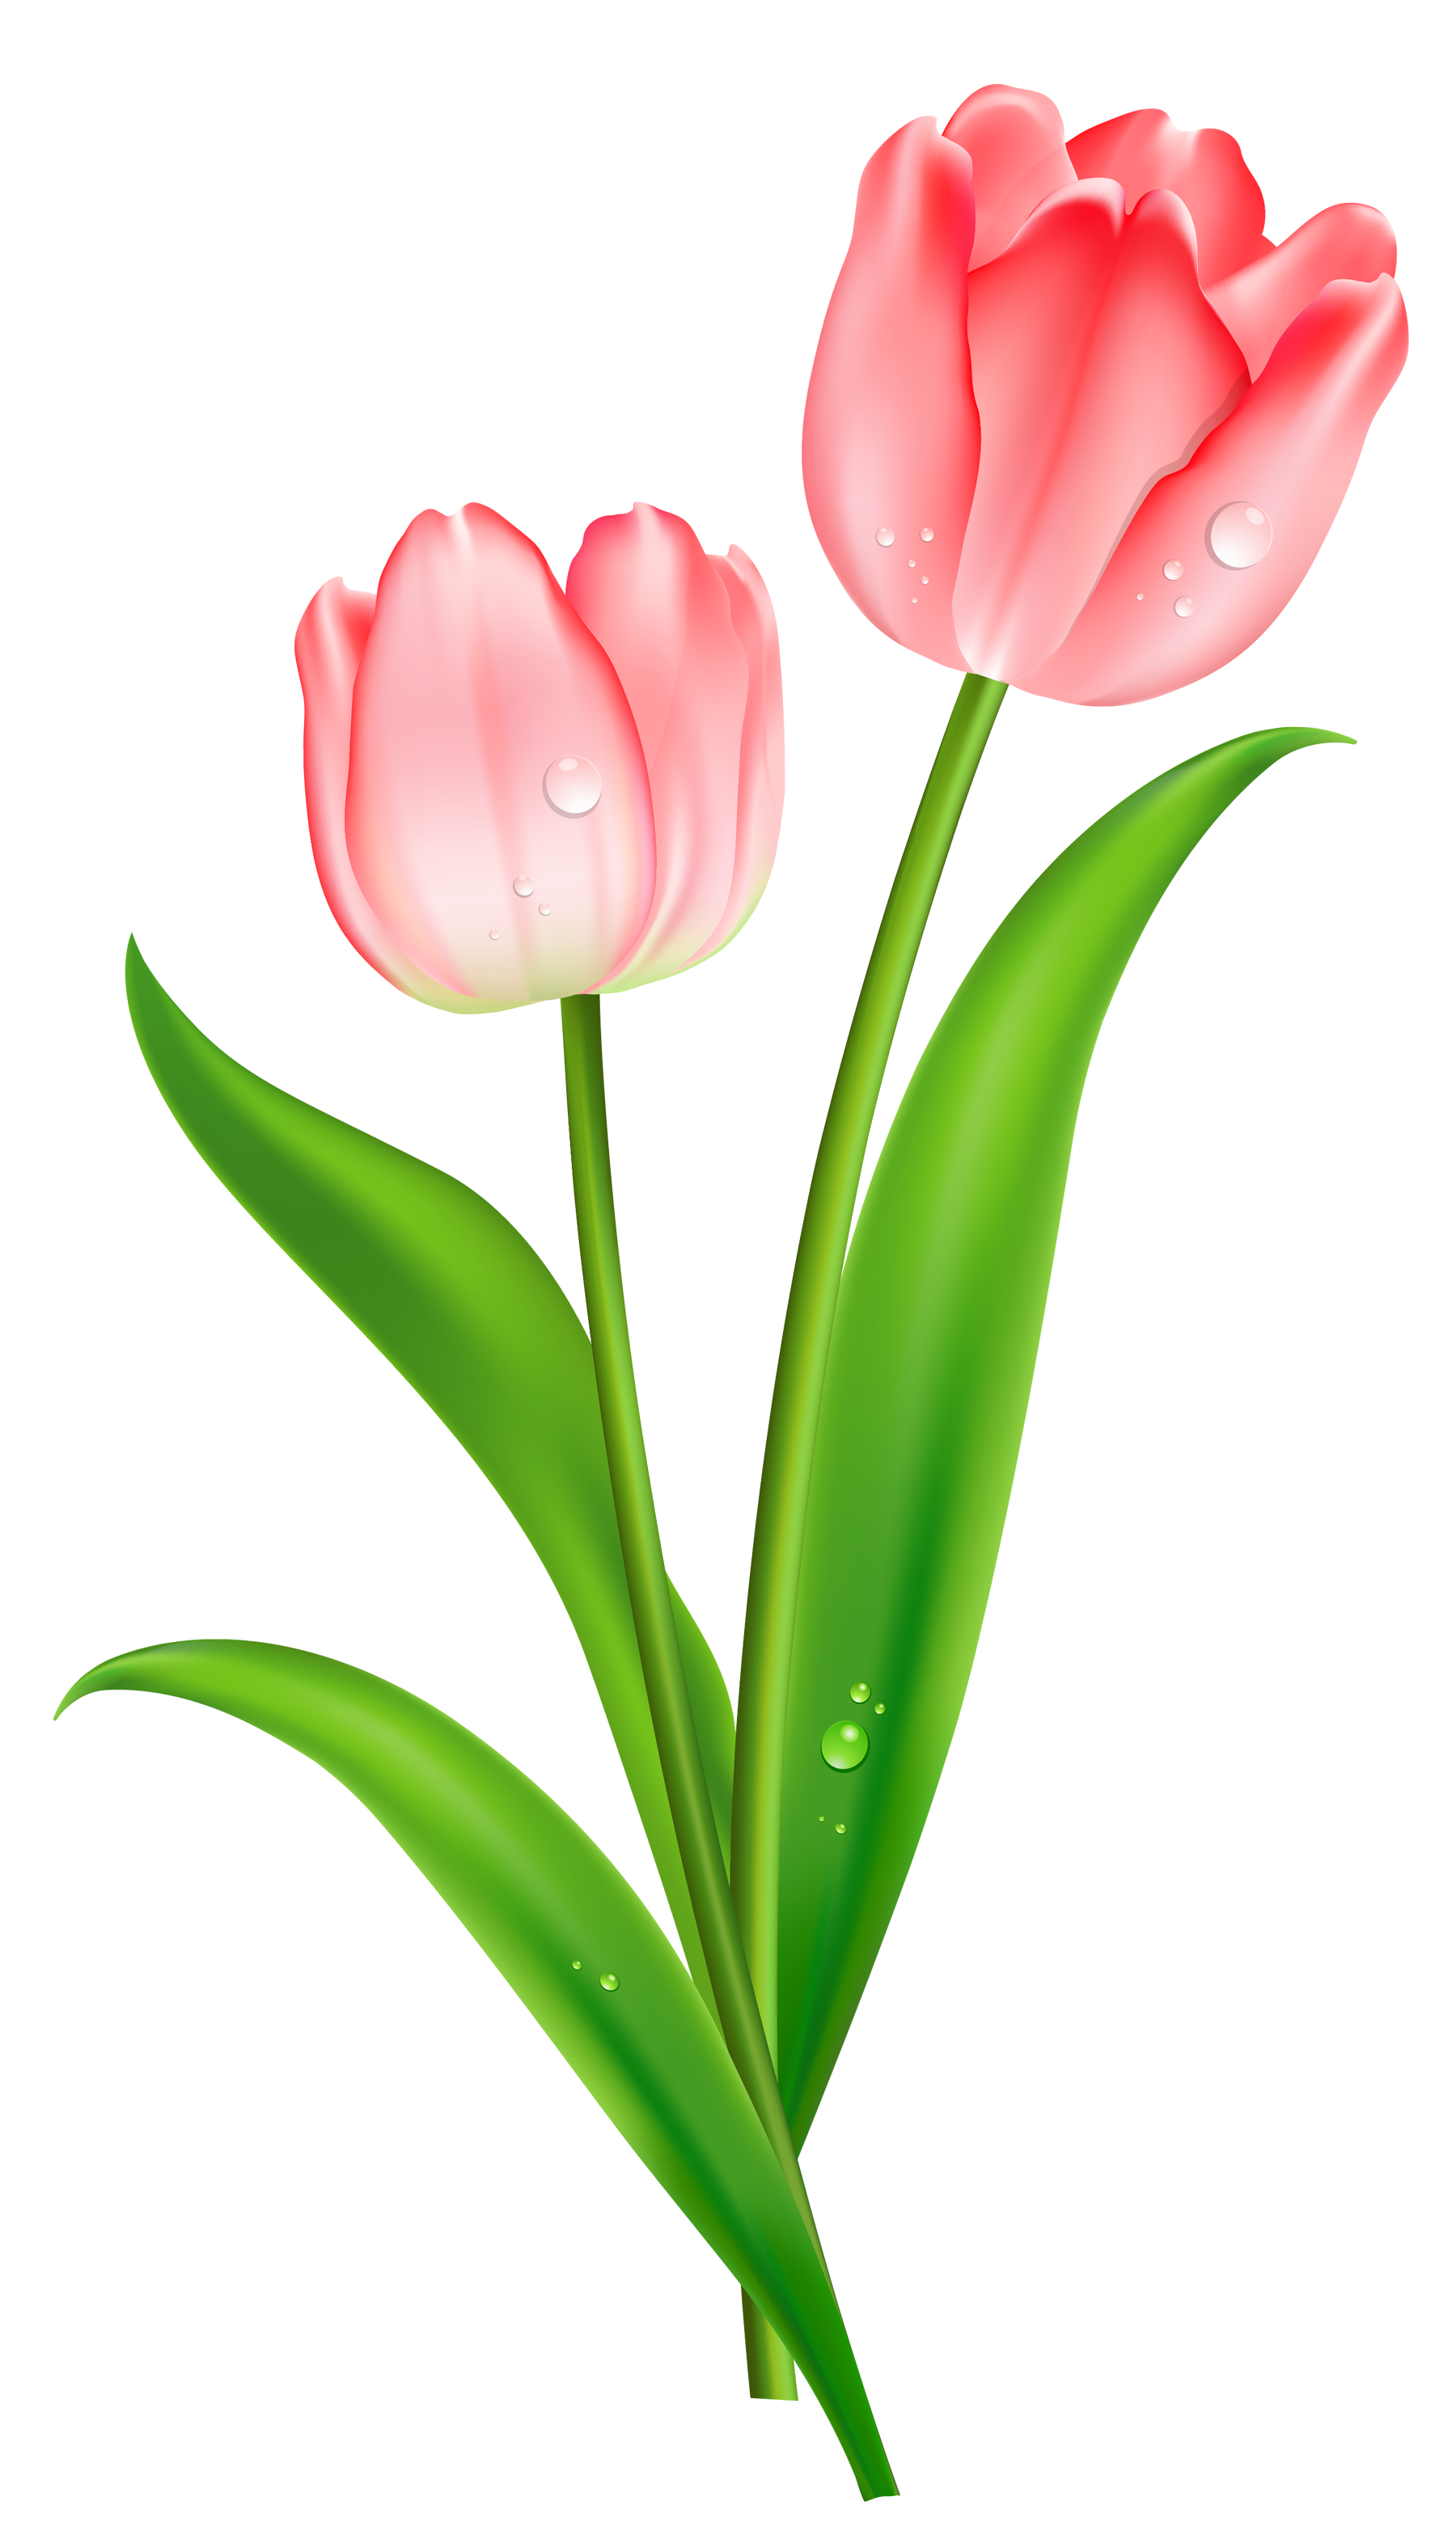 jpg free Tulip png images free. Tulips clipart.